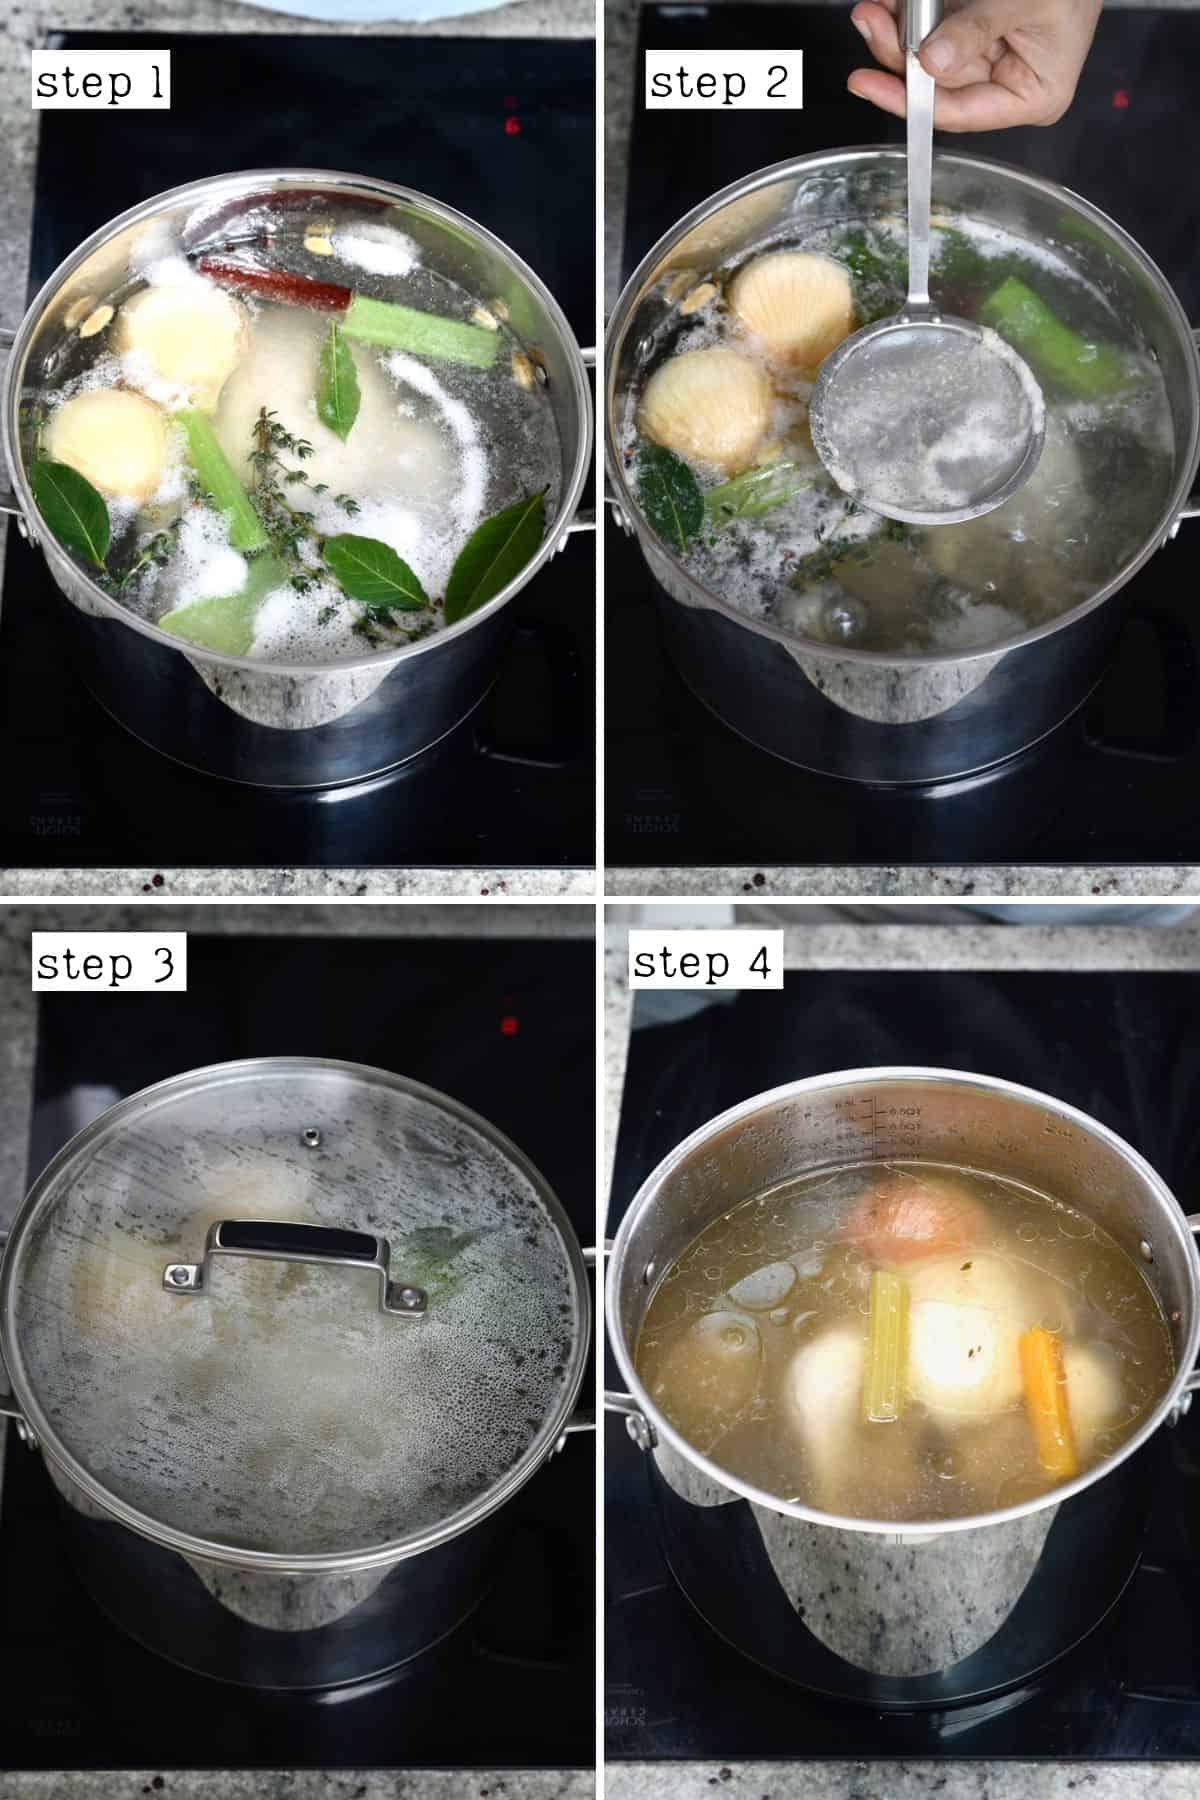 Steps for making homemade chicken broth